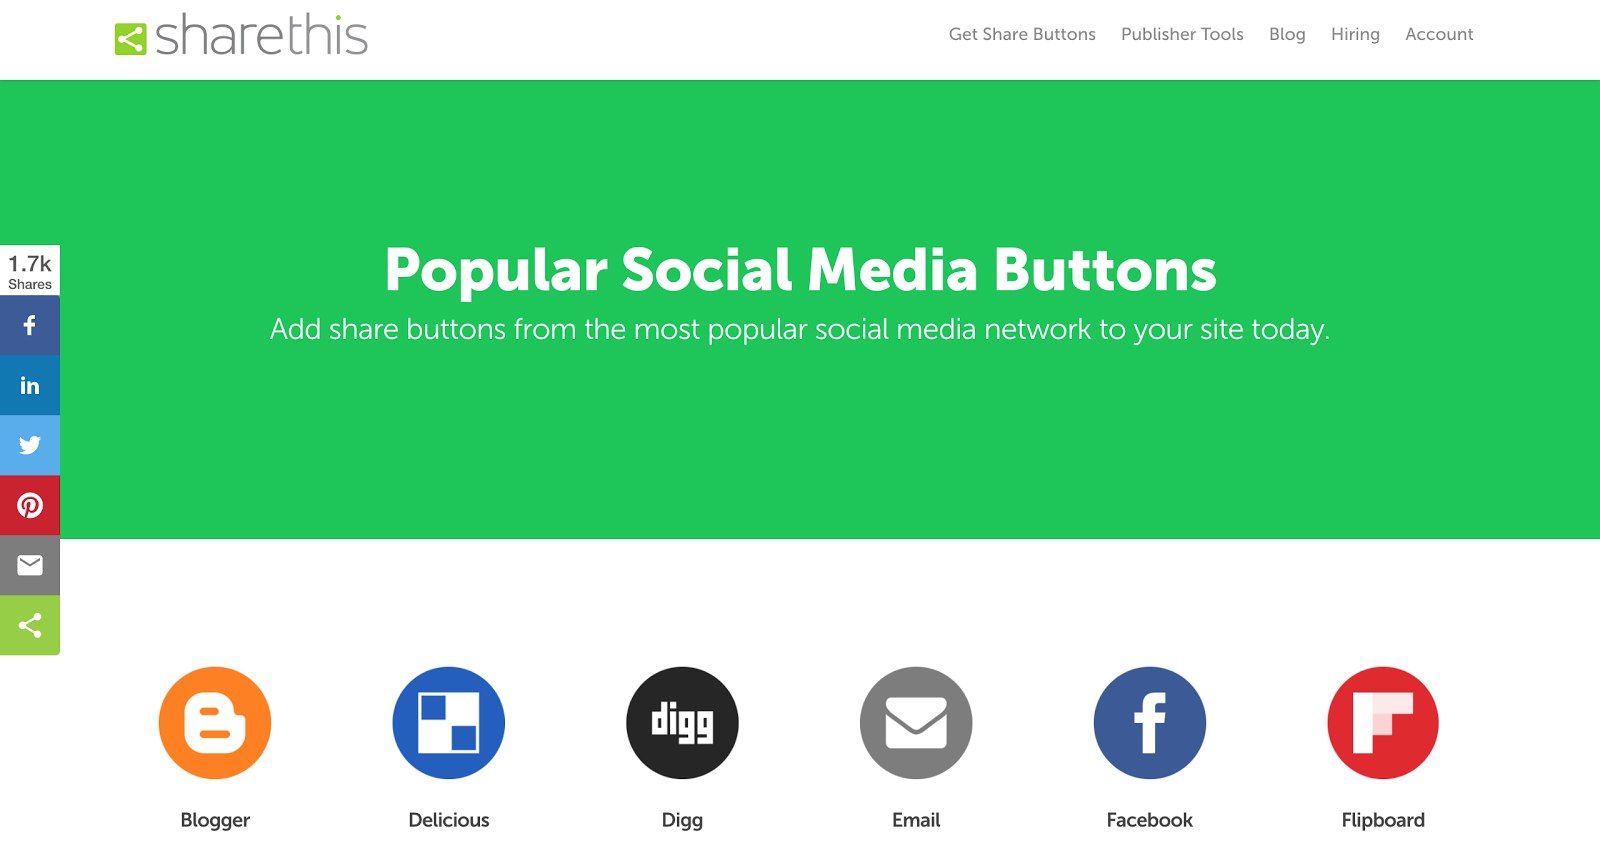 The ShareThis site which allows you to add social sharing buttons to your site